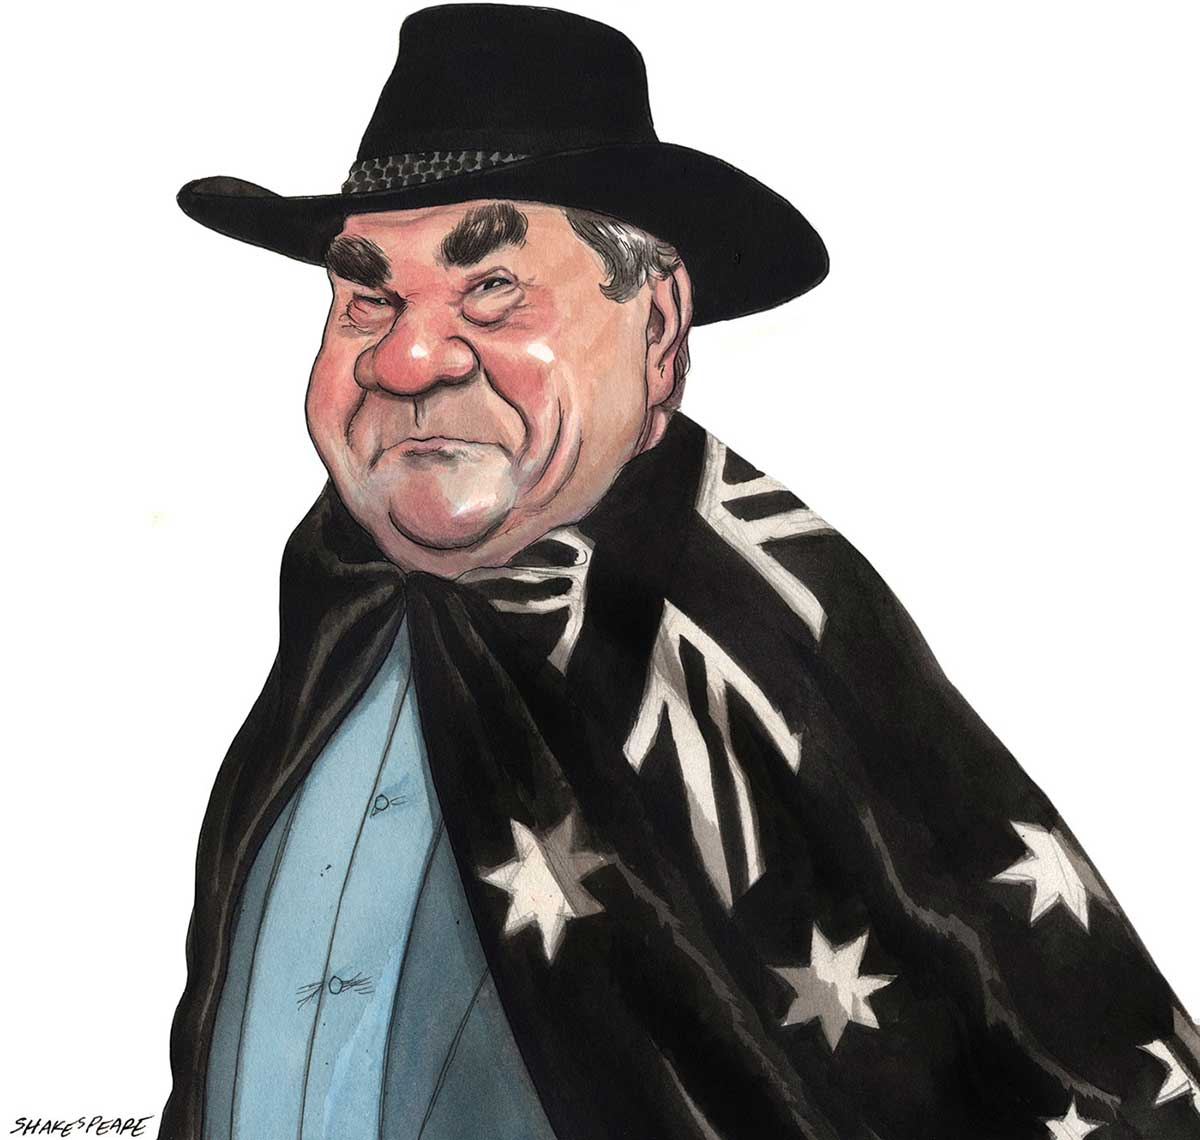 A colour cartoon depicting Mick Dodson wearing an Australian flag as a cape. He faces to the left of the image and wears a black hat. His face is turned toward the viewer. His expression is one of tenacity, determination and good humour. He wears a grey jacket and blue shirt under the flag cape. He has large bushy eyebrows and his face is heavy-set and fleshy. - click to view larger image